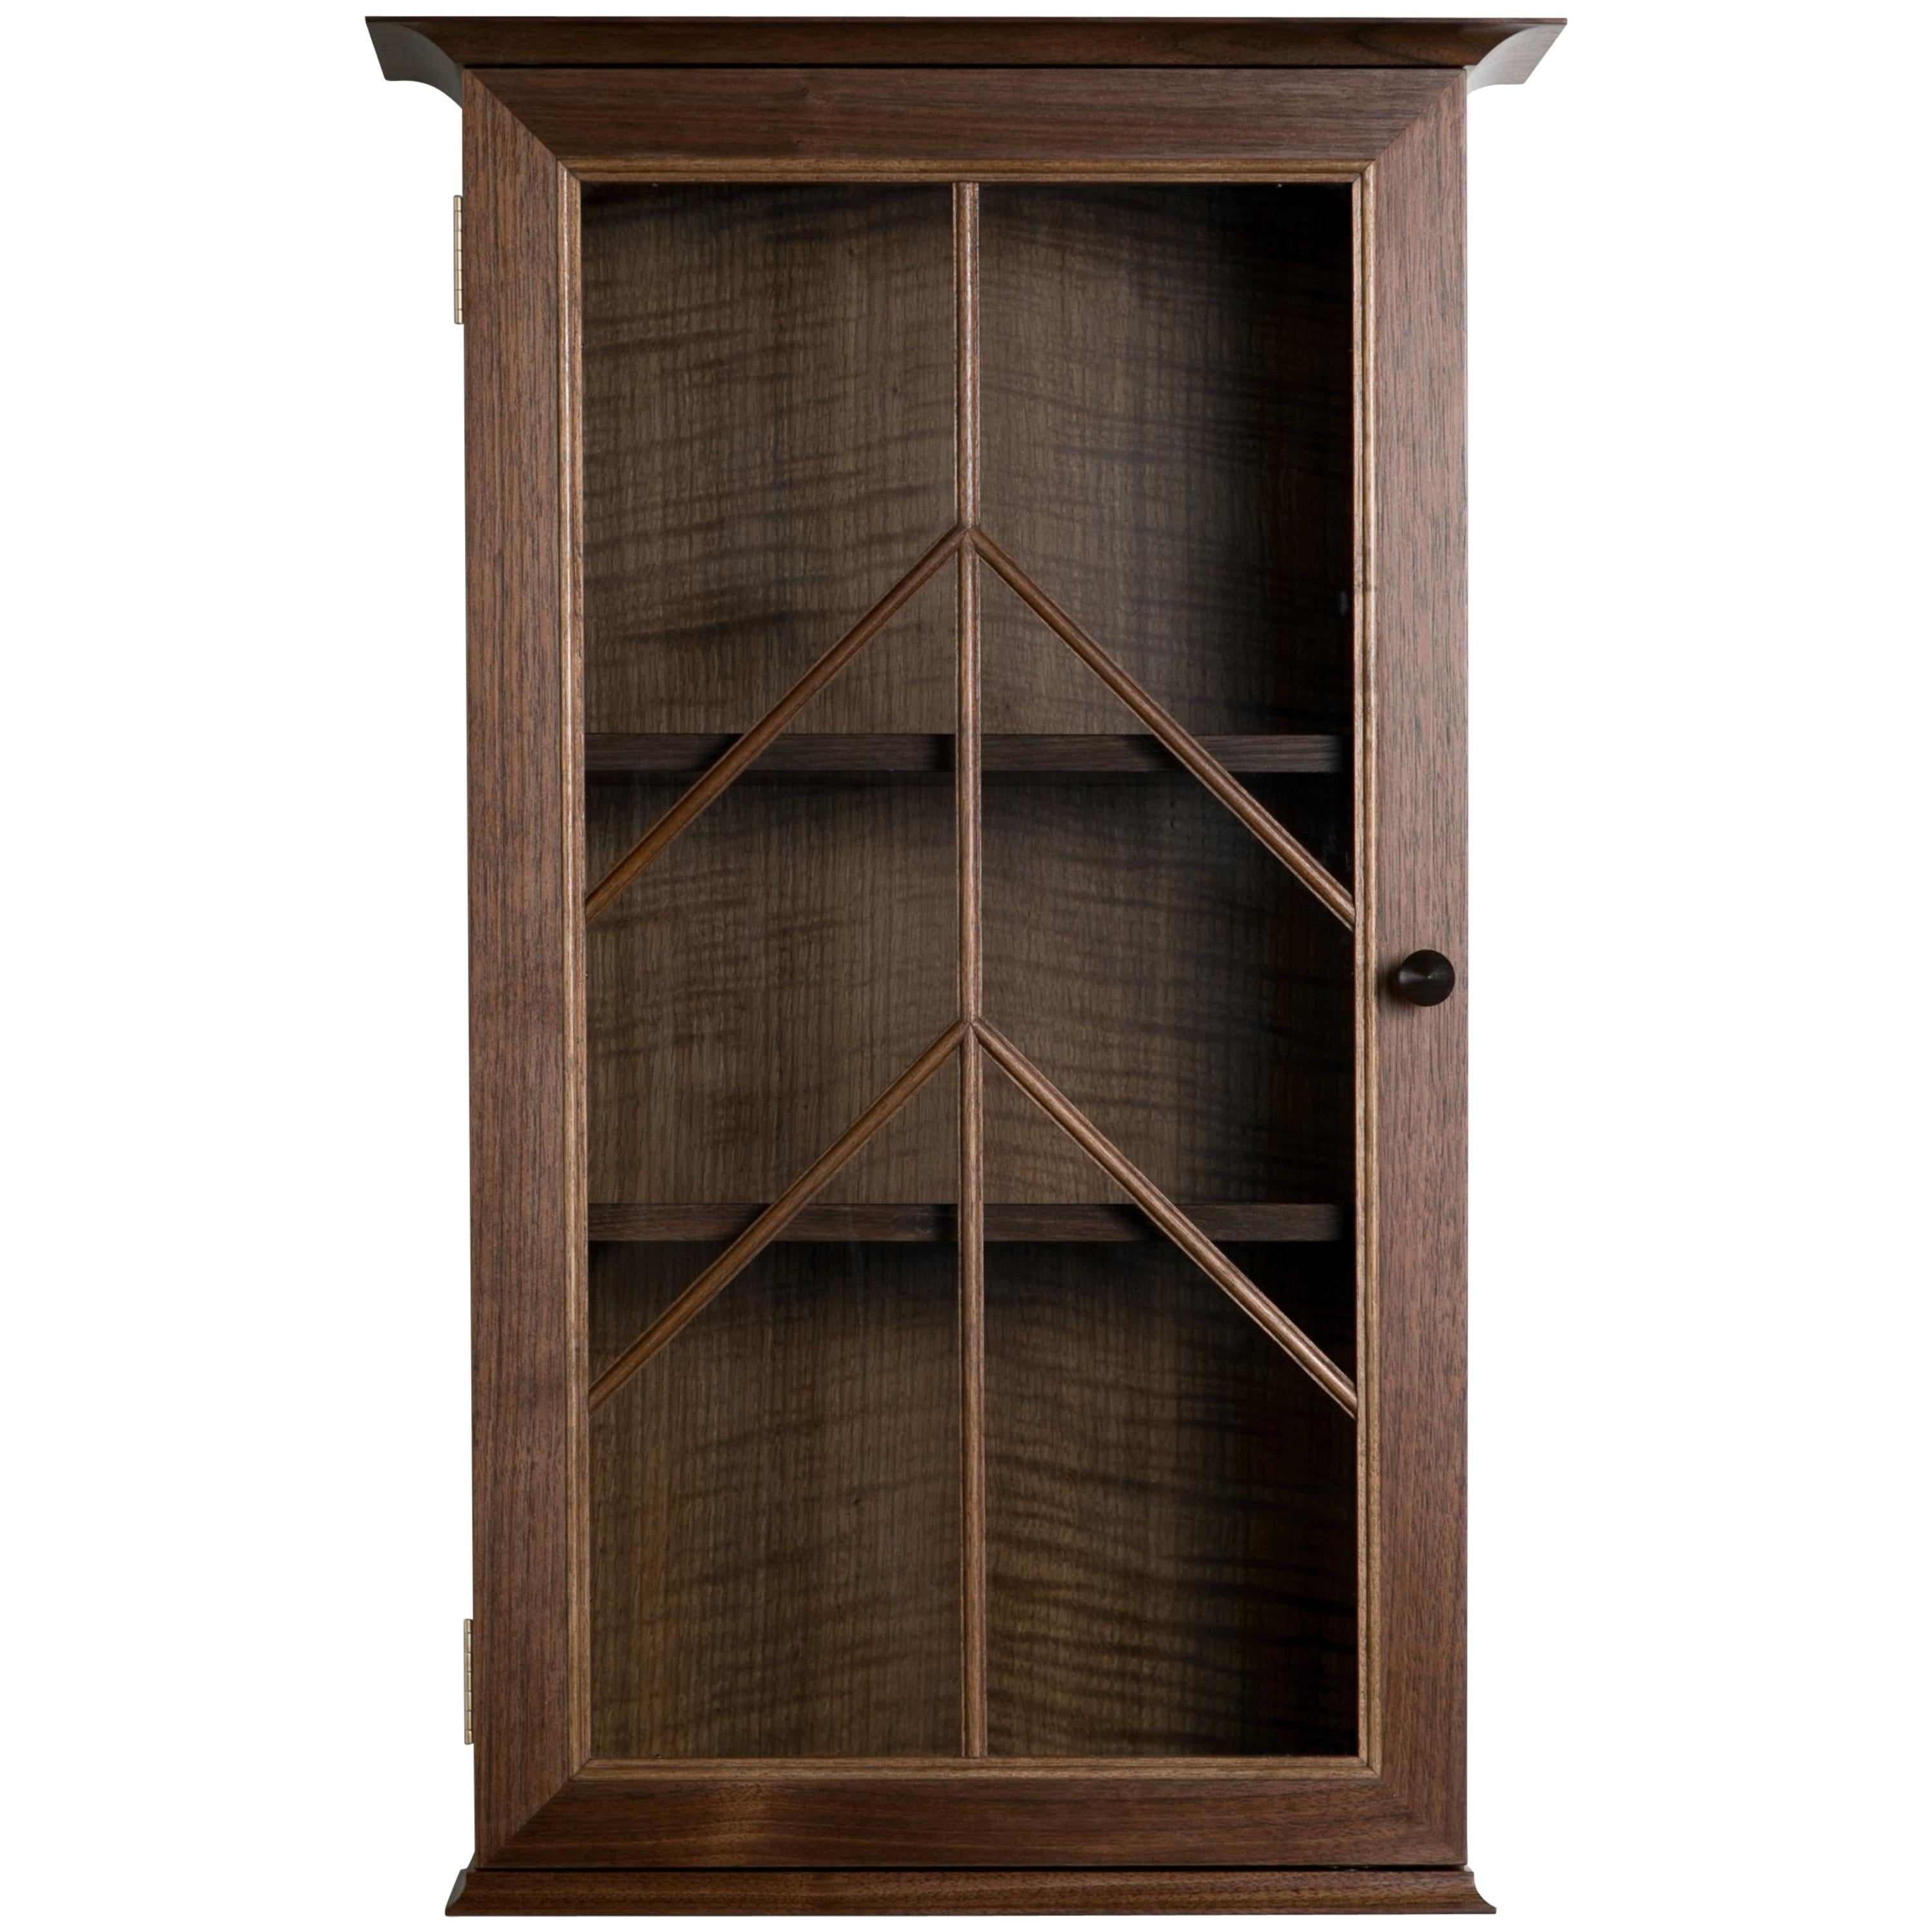 Contemporary North End Wall Cabinet In Walnut, Curly Oak With Barred Glass  Door For Sale